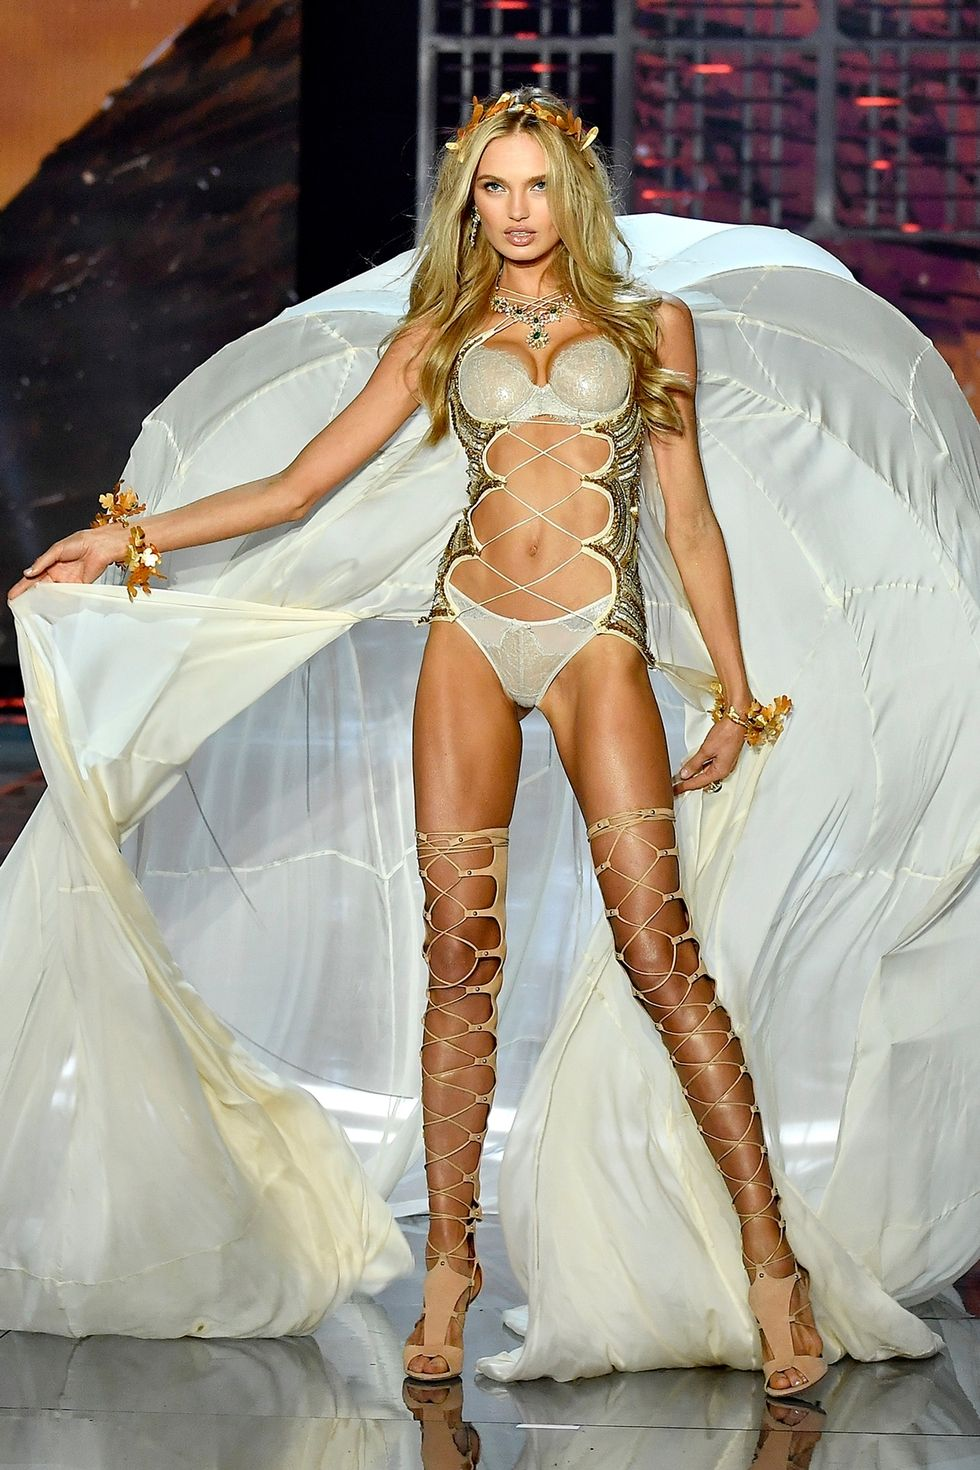 Romee Strijd - This gladiator look with roman crowns certainly felt powerful. The golden leaf accent really bring out the shimmer.